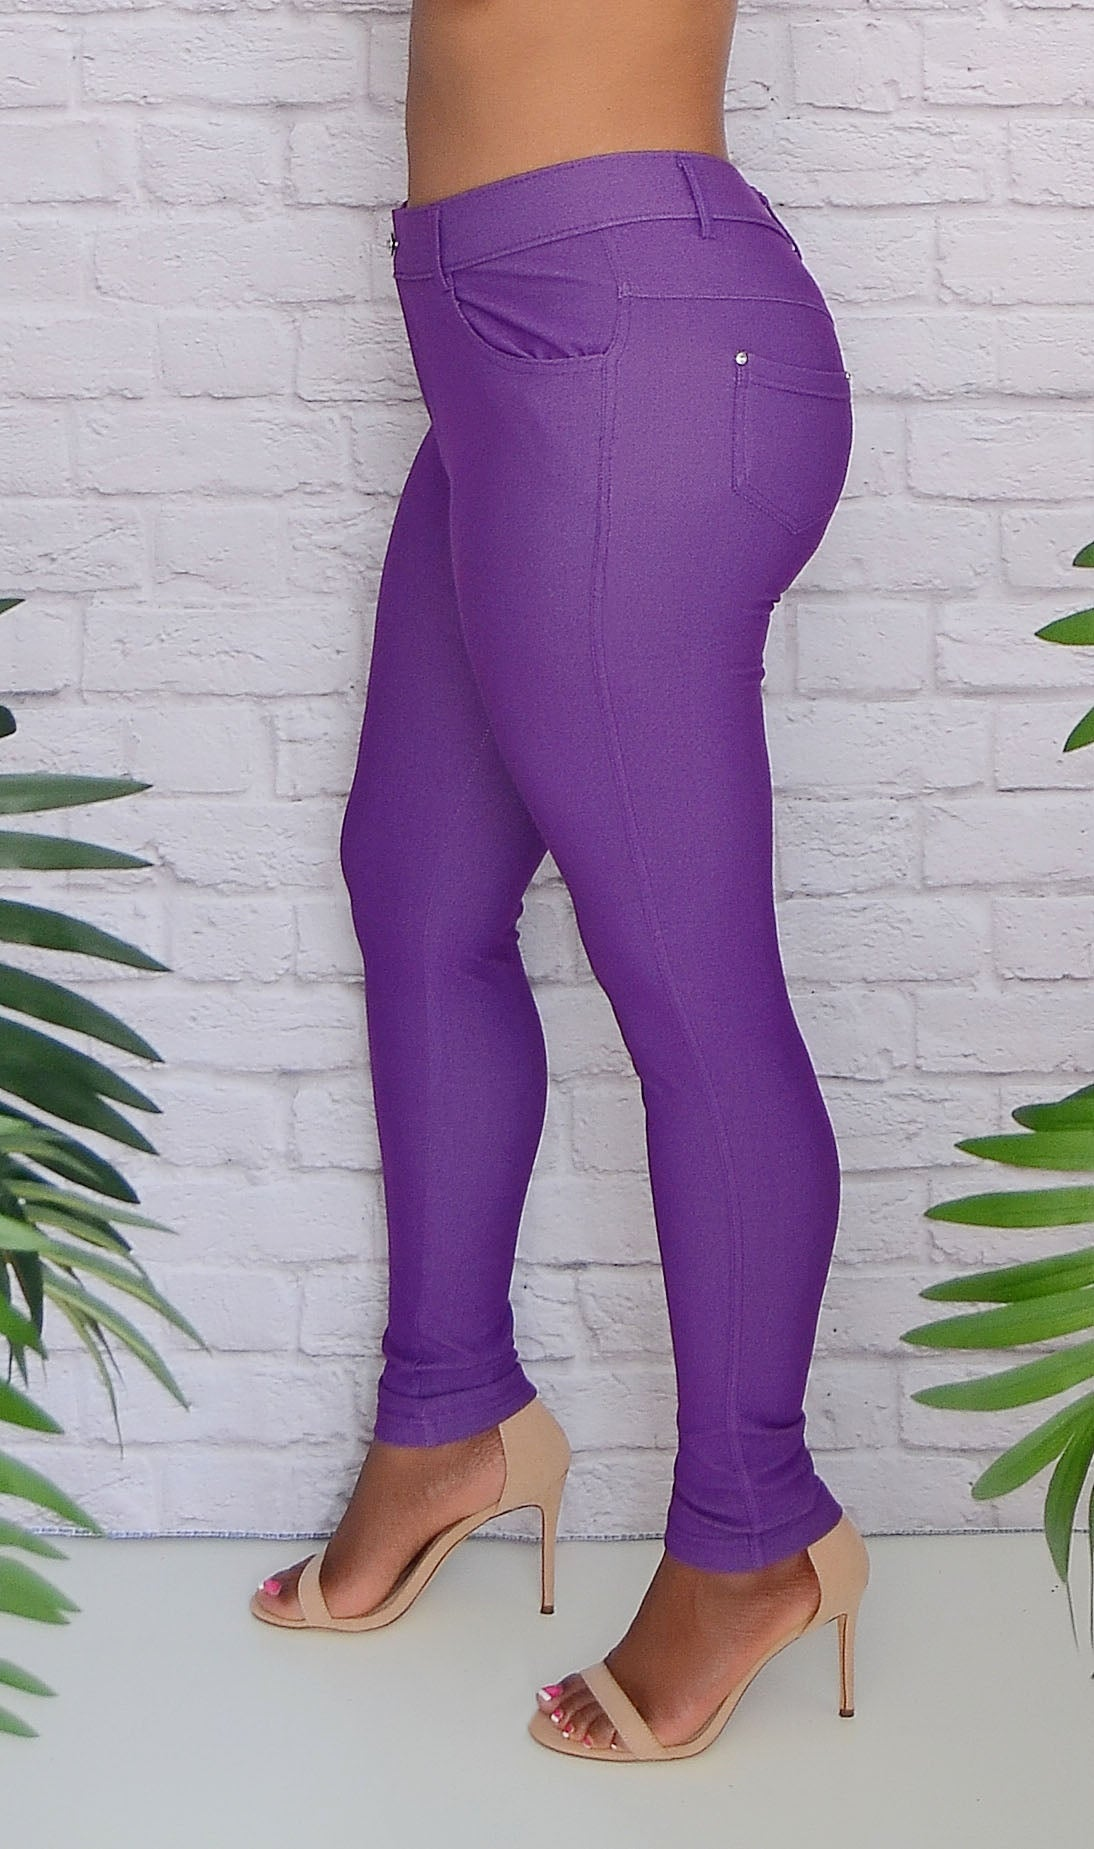 Women's Purple 5 Pocket Stretch Skinny Jeggings